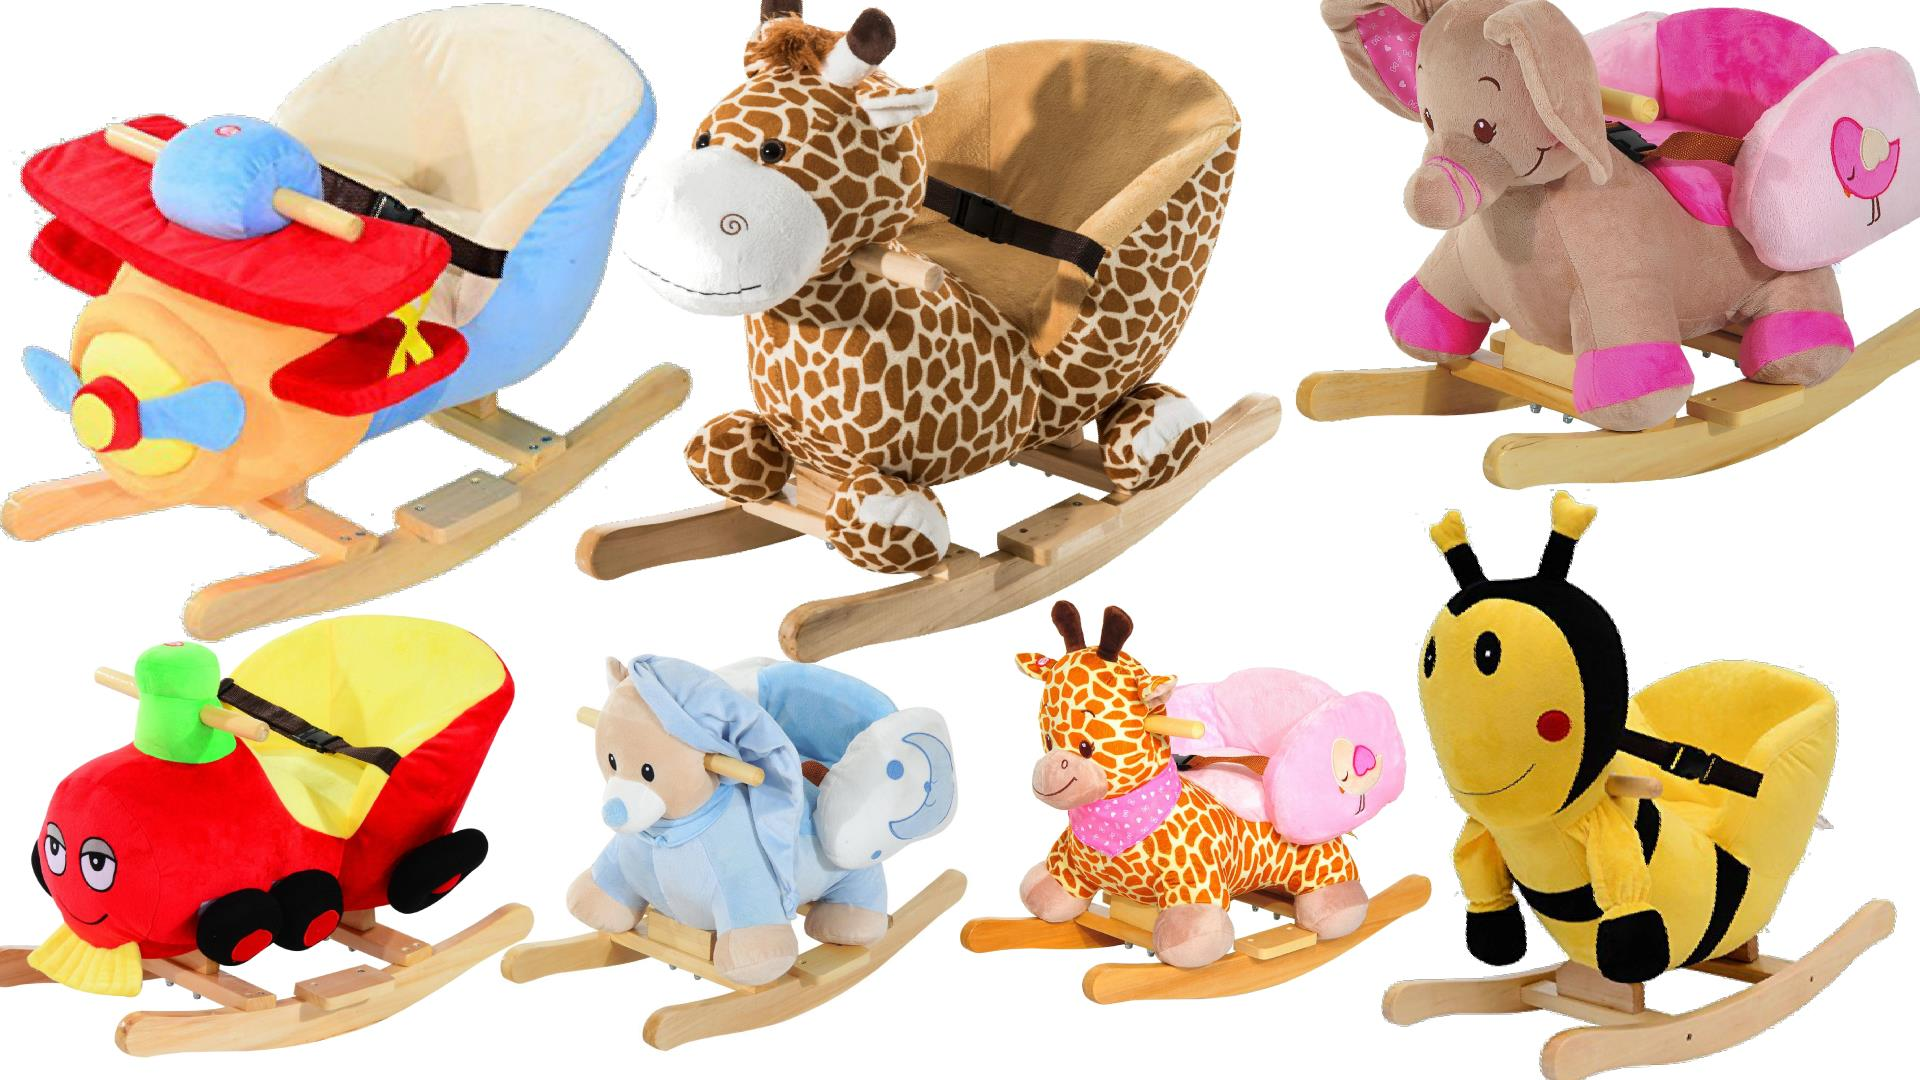 Best Plush Rocking Horses Animals W Seats For Babies Toddlers - Animal-chairs-for-children